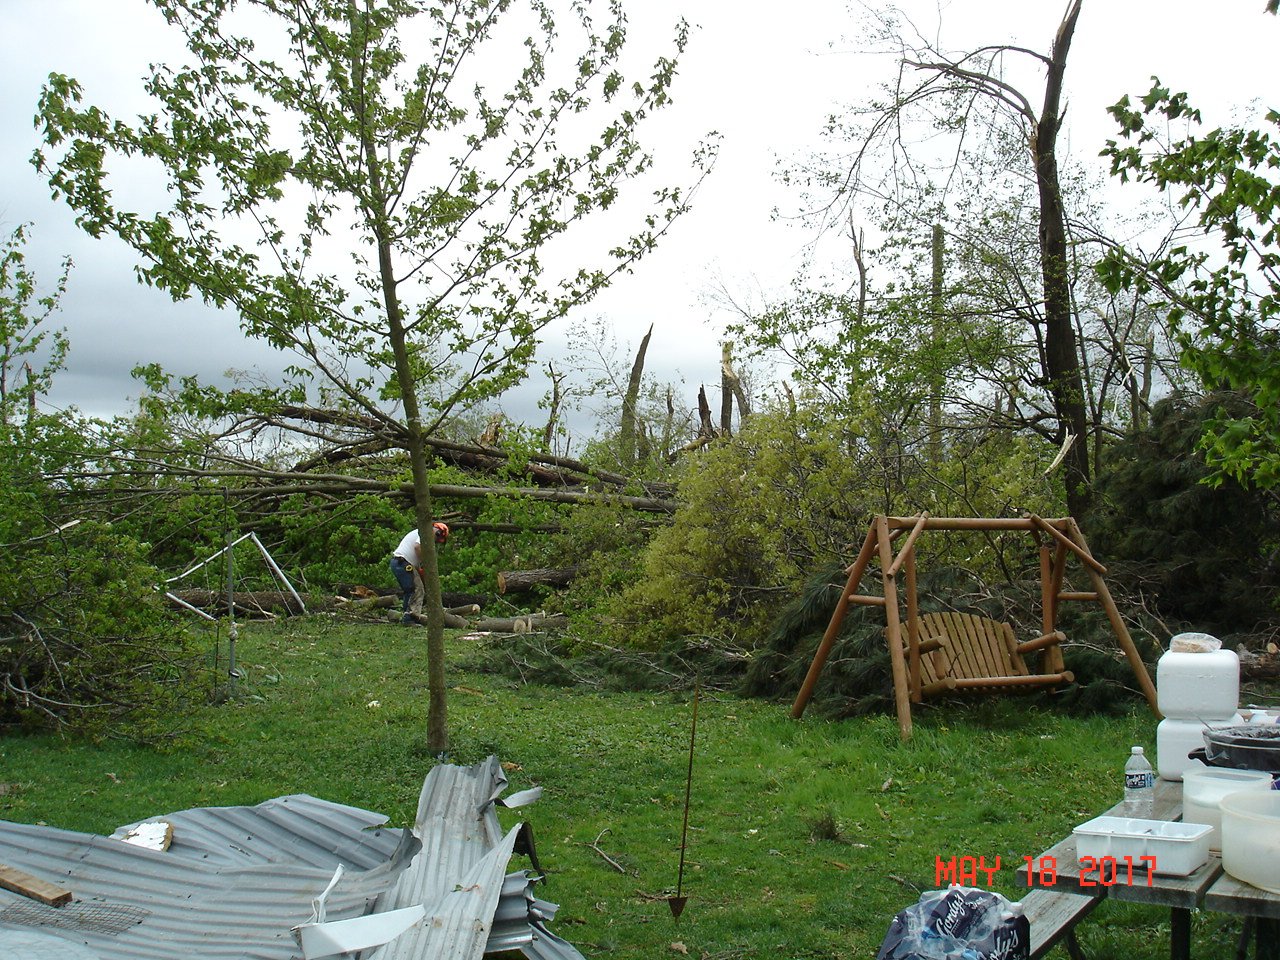 After much sawing and hauling debris from the yard.